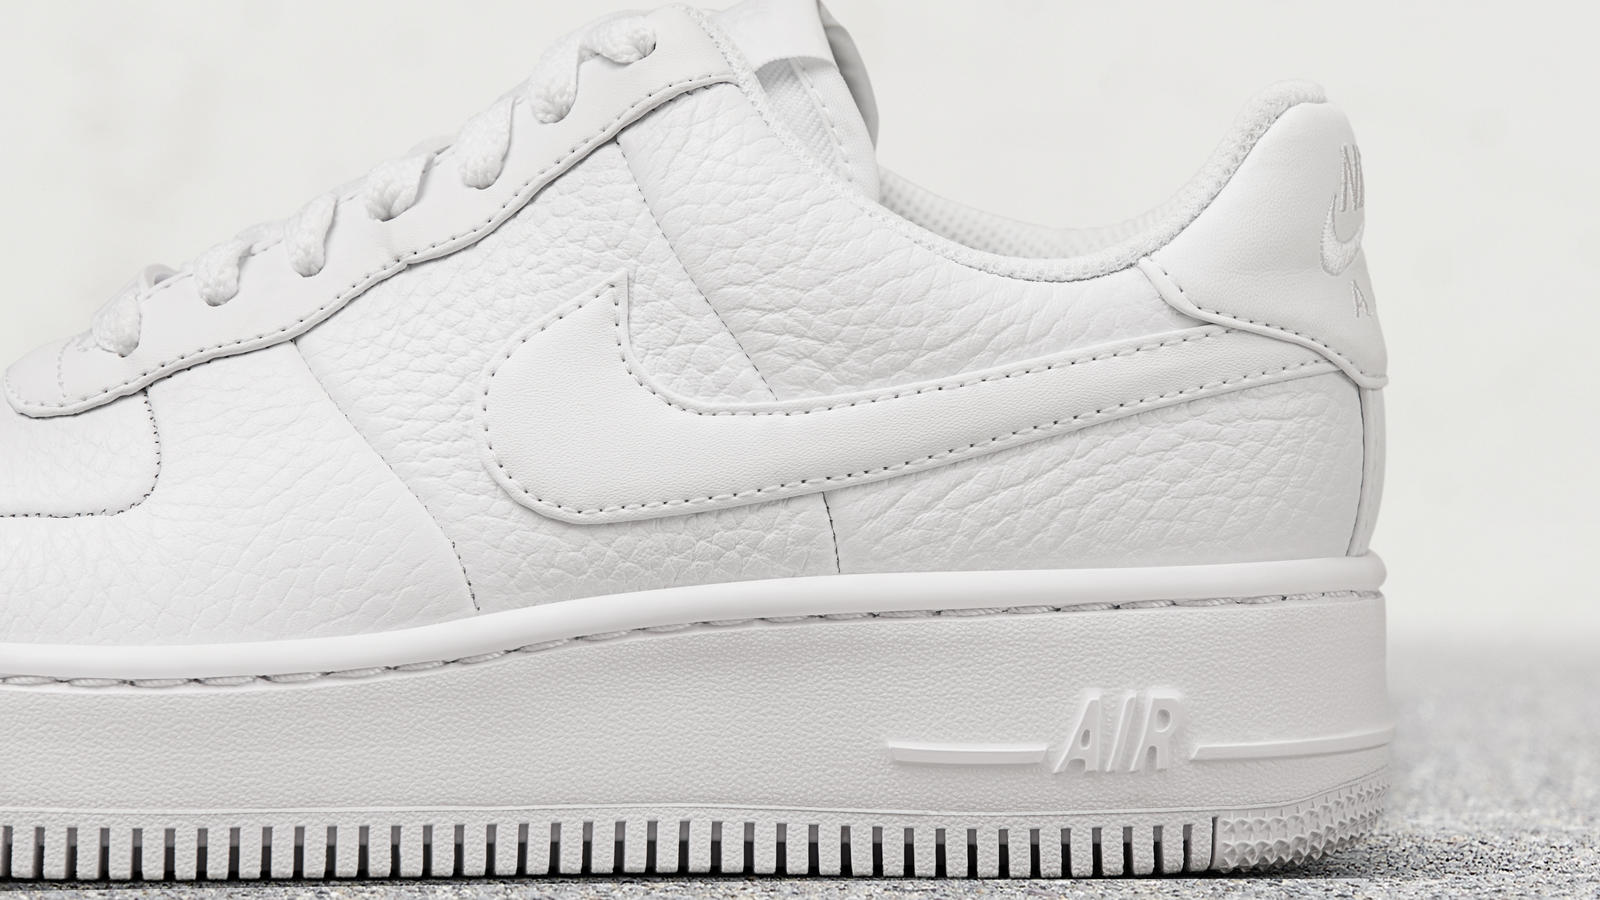 Bread and butter af1 6 hd 1600